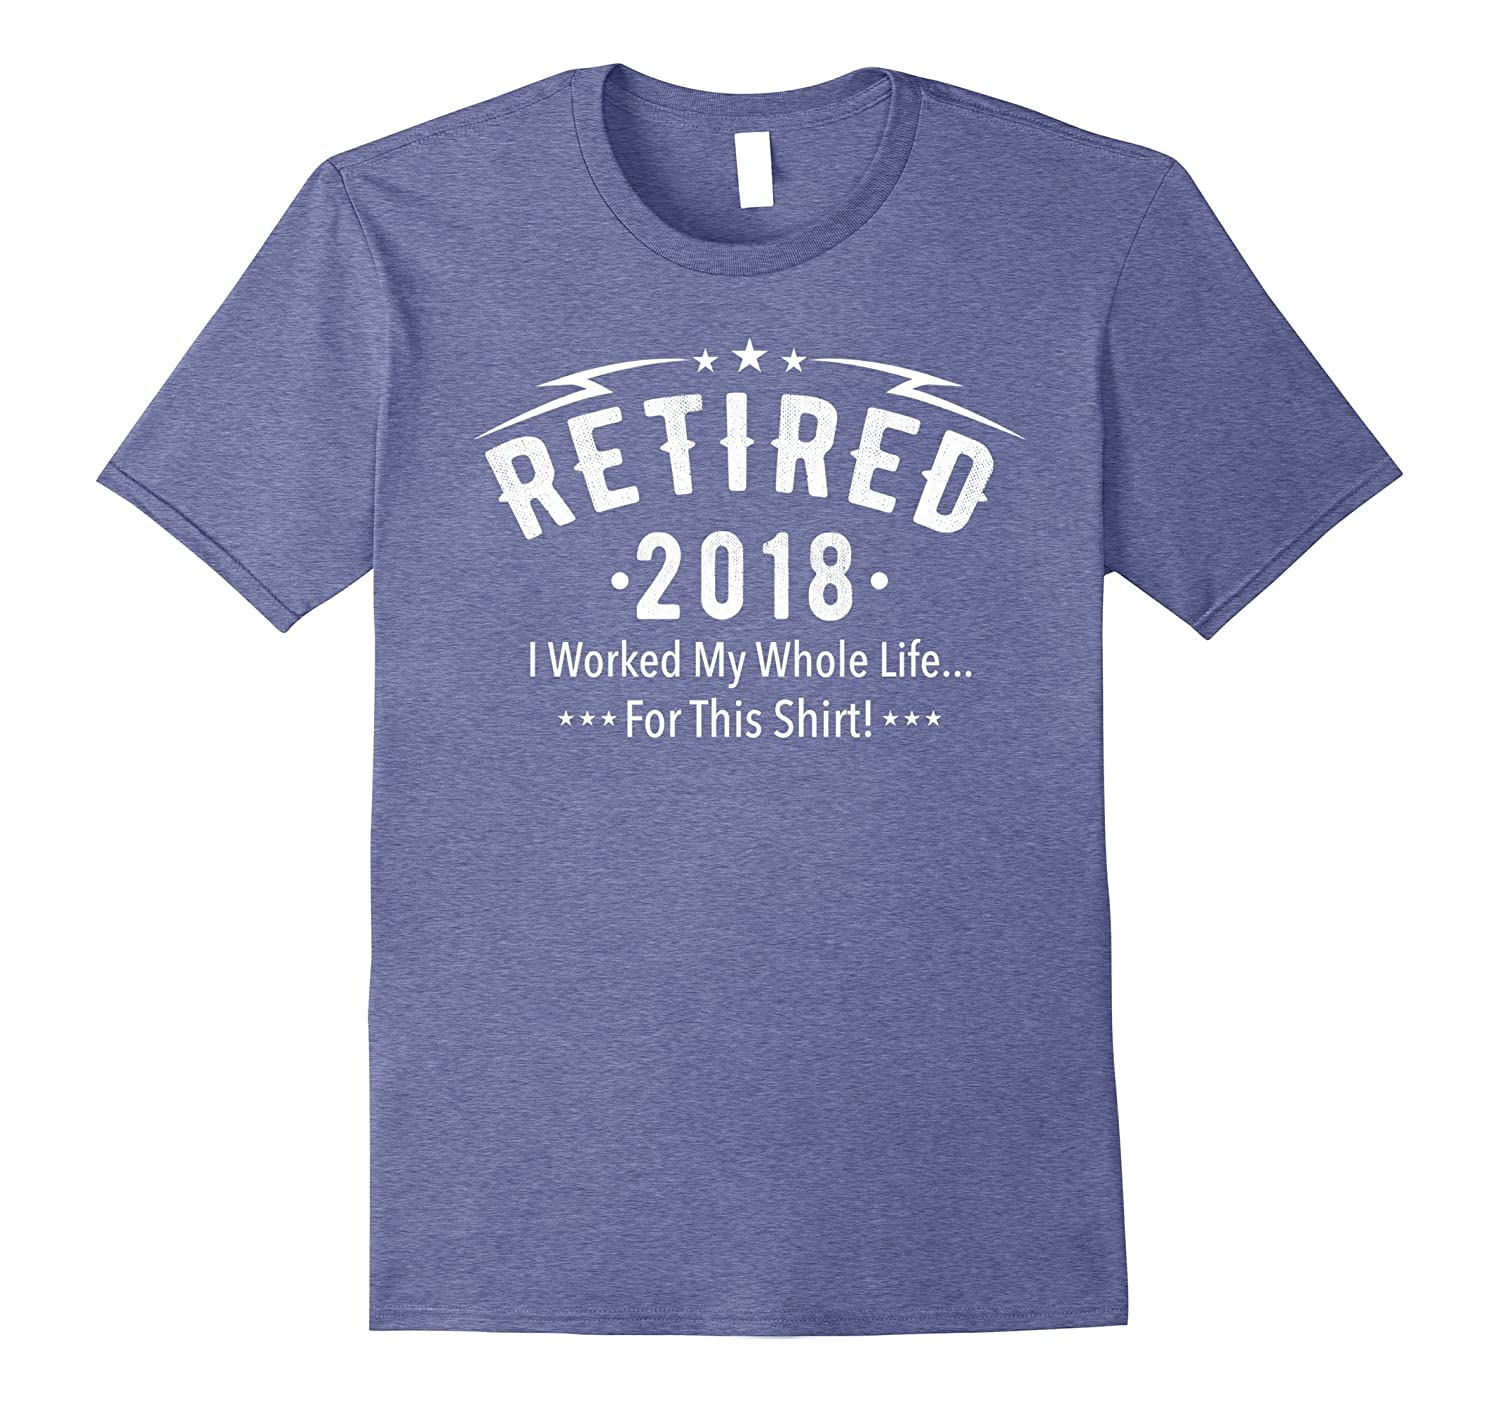 Retired 2018 Shirt: Funny Retirement Gift T-Shirt-alottee gift